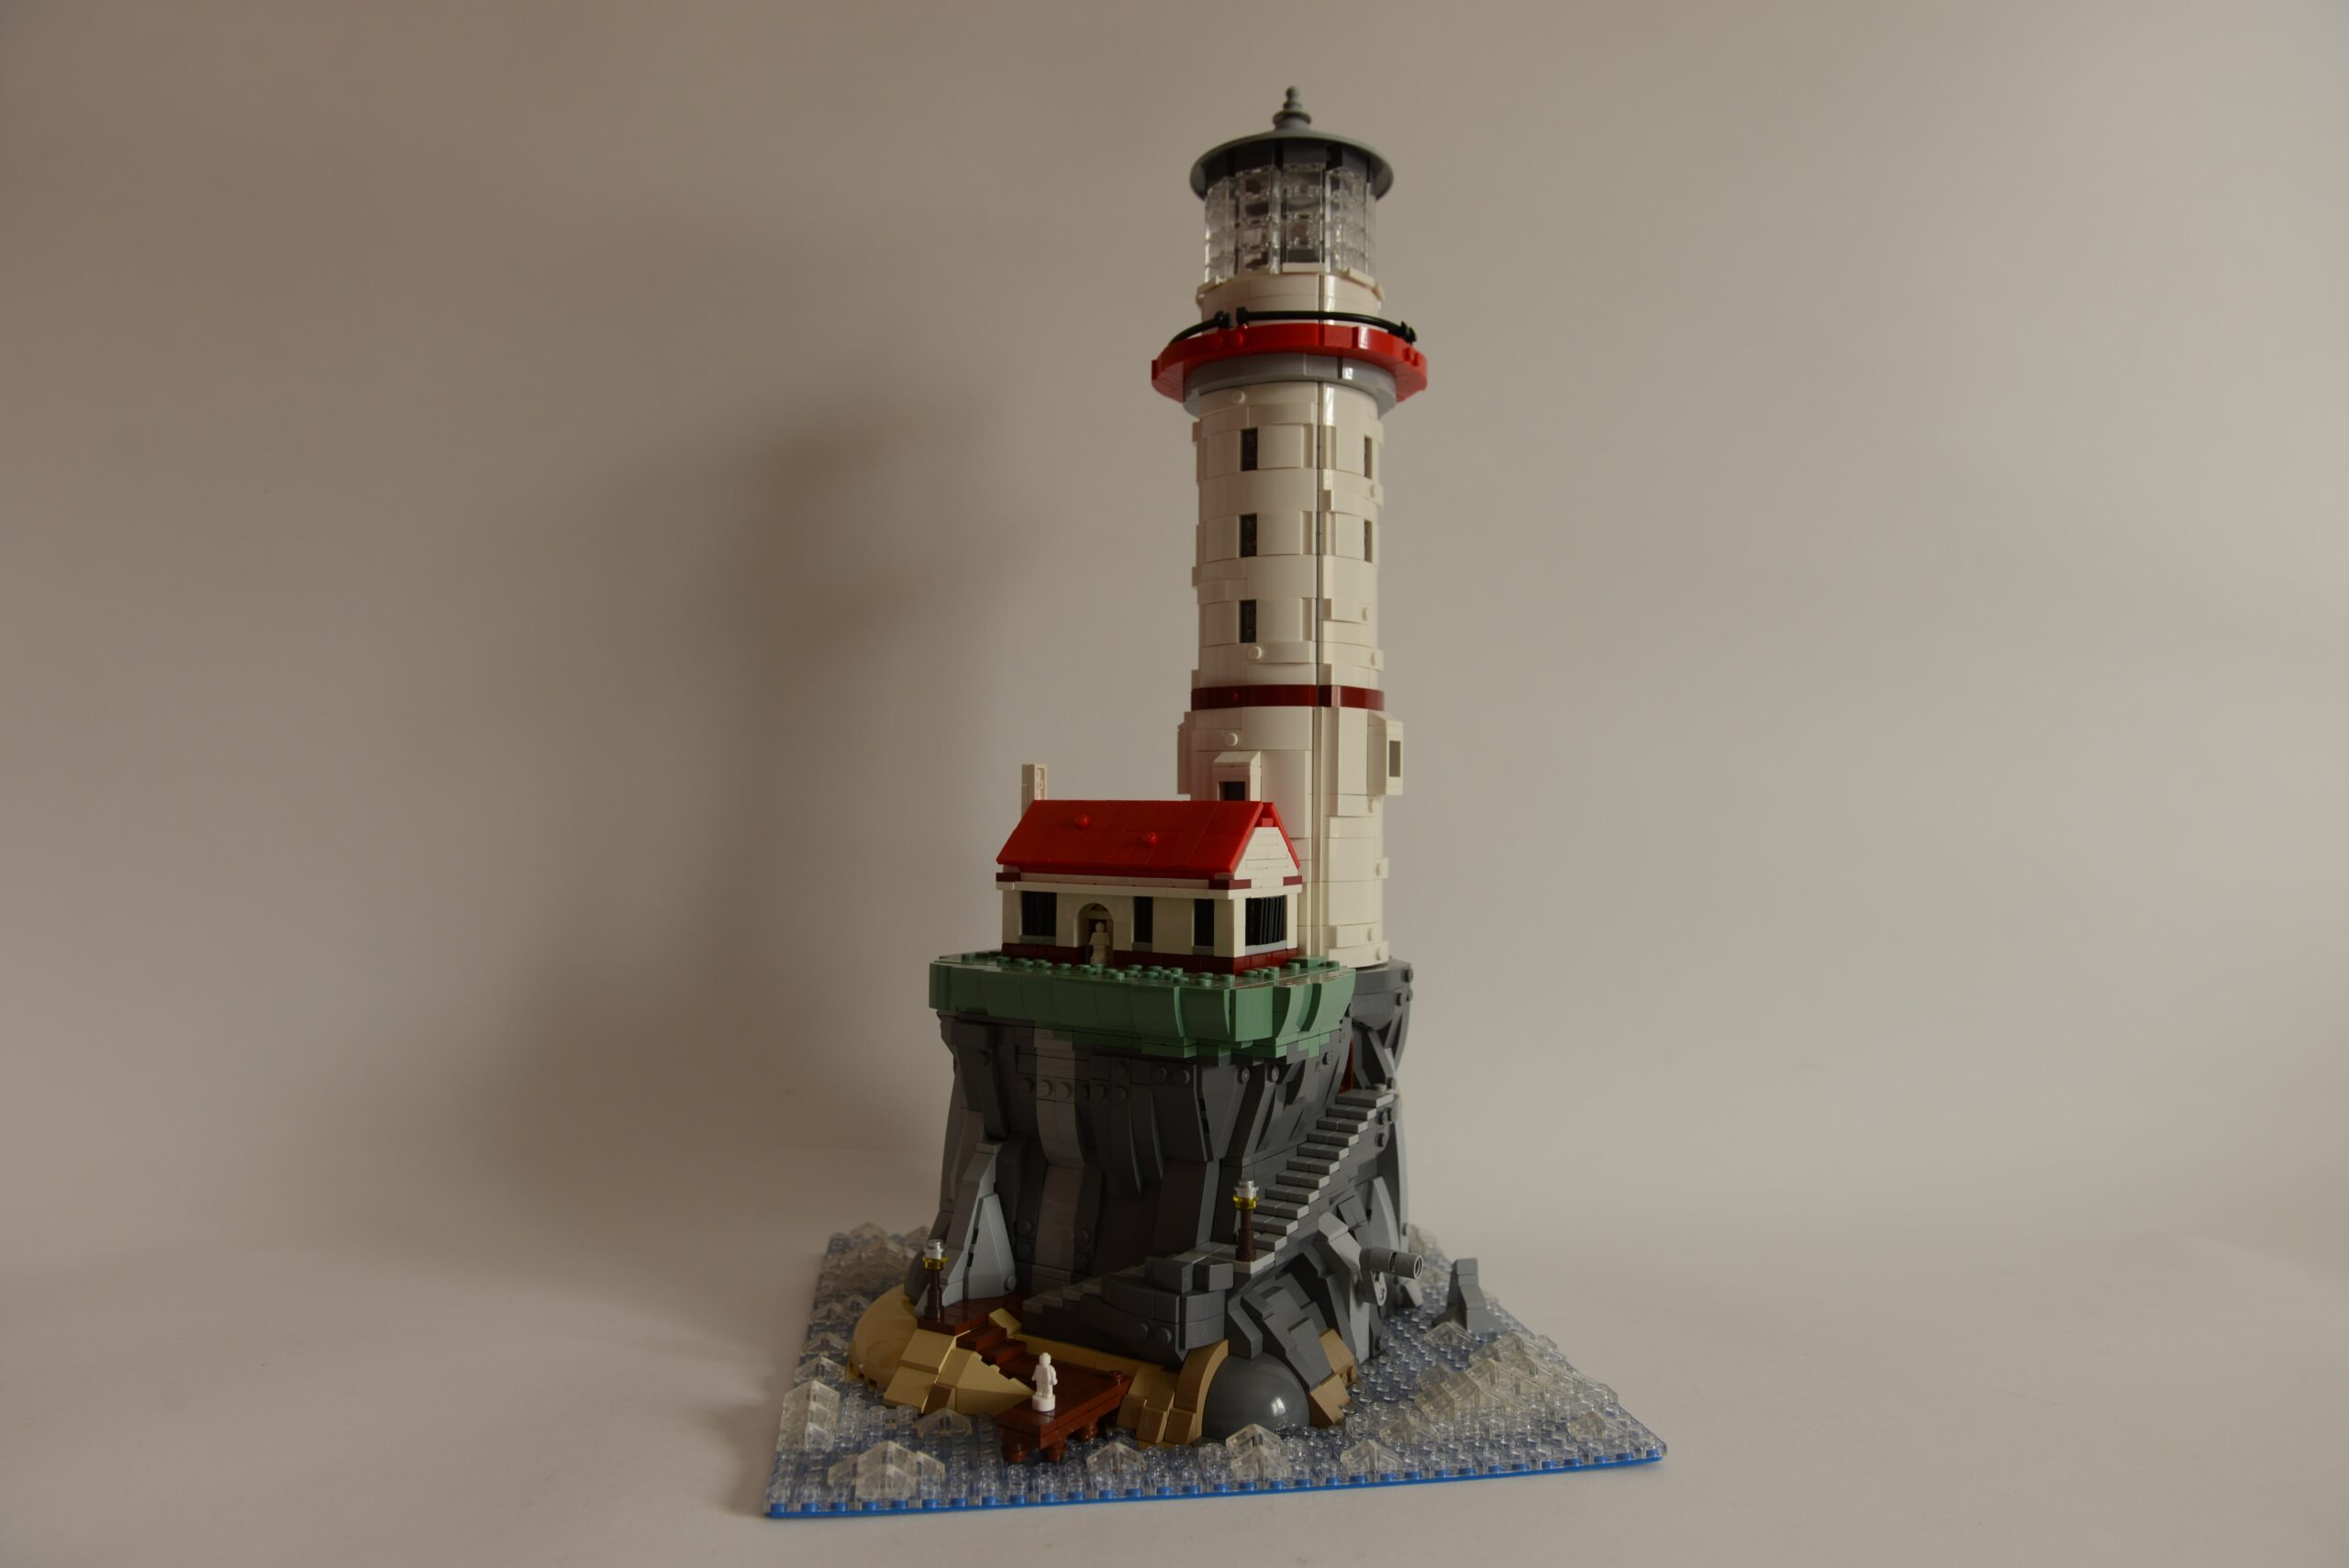 Motorized Lighthouse Roses Must Build